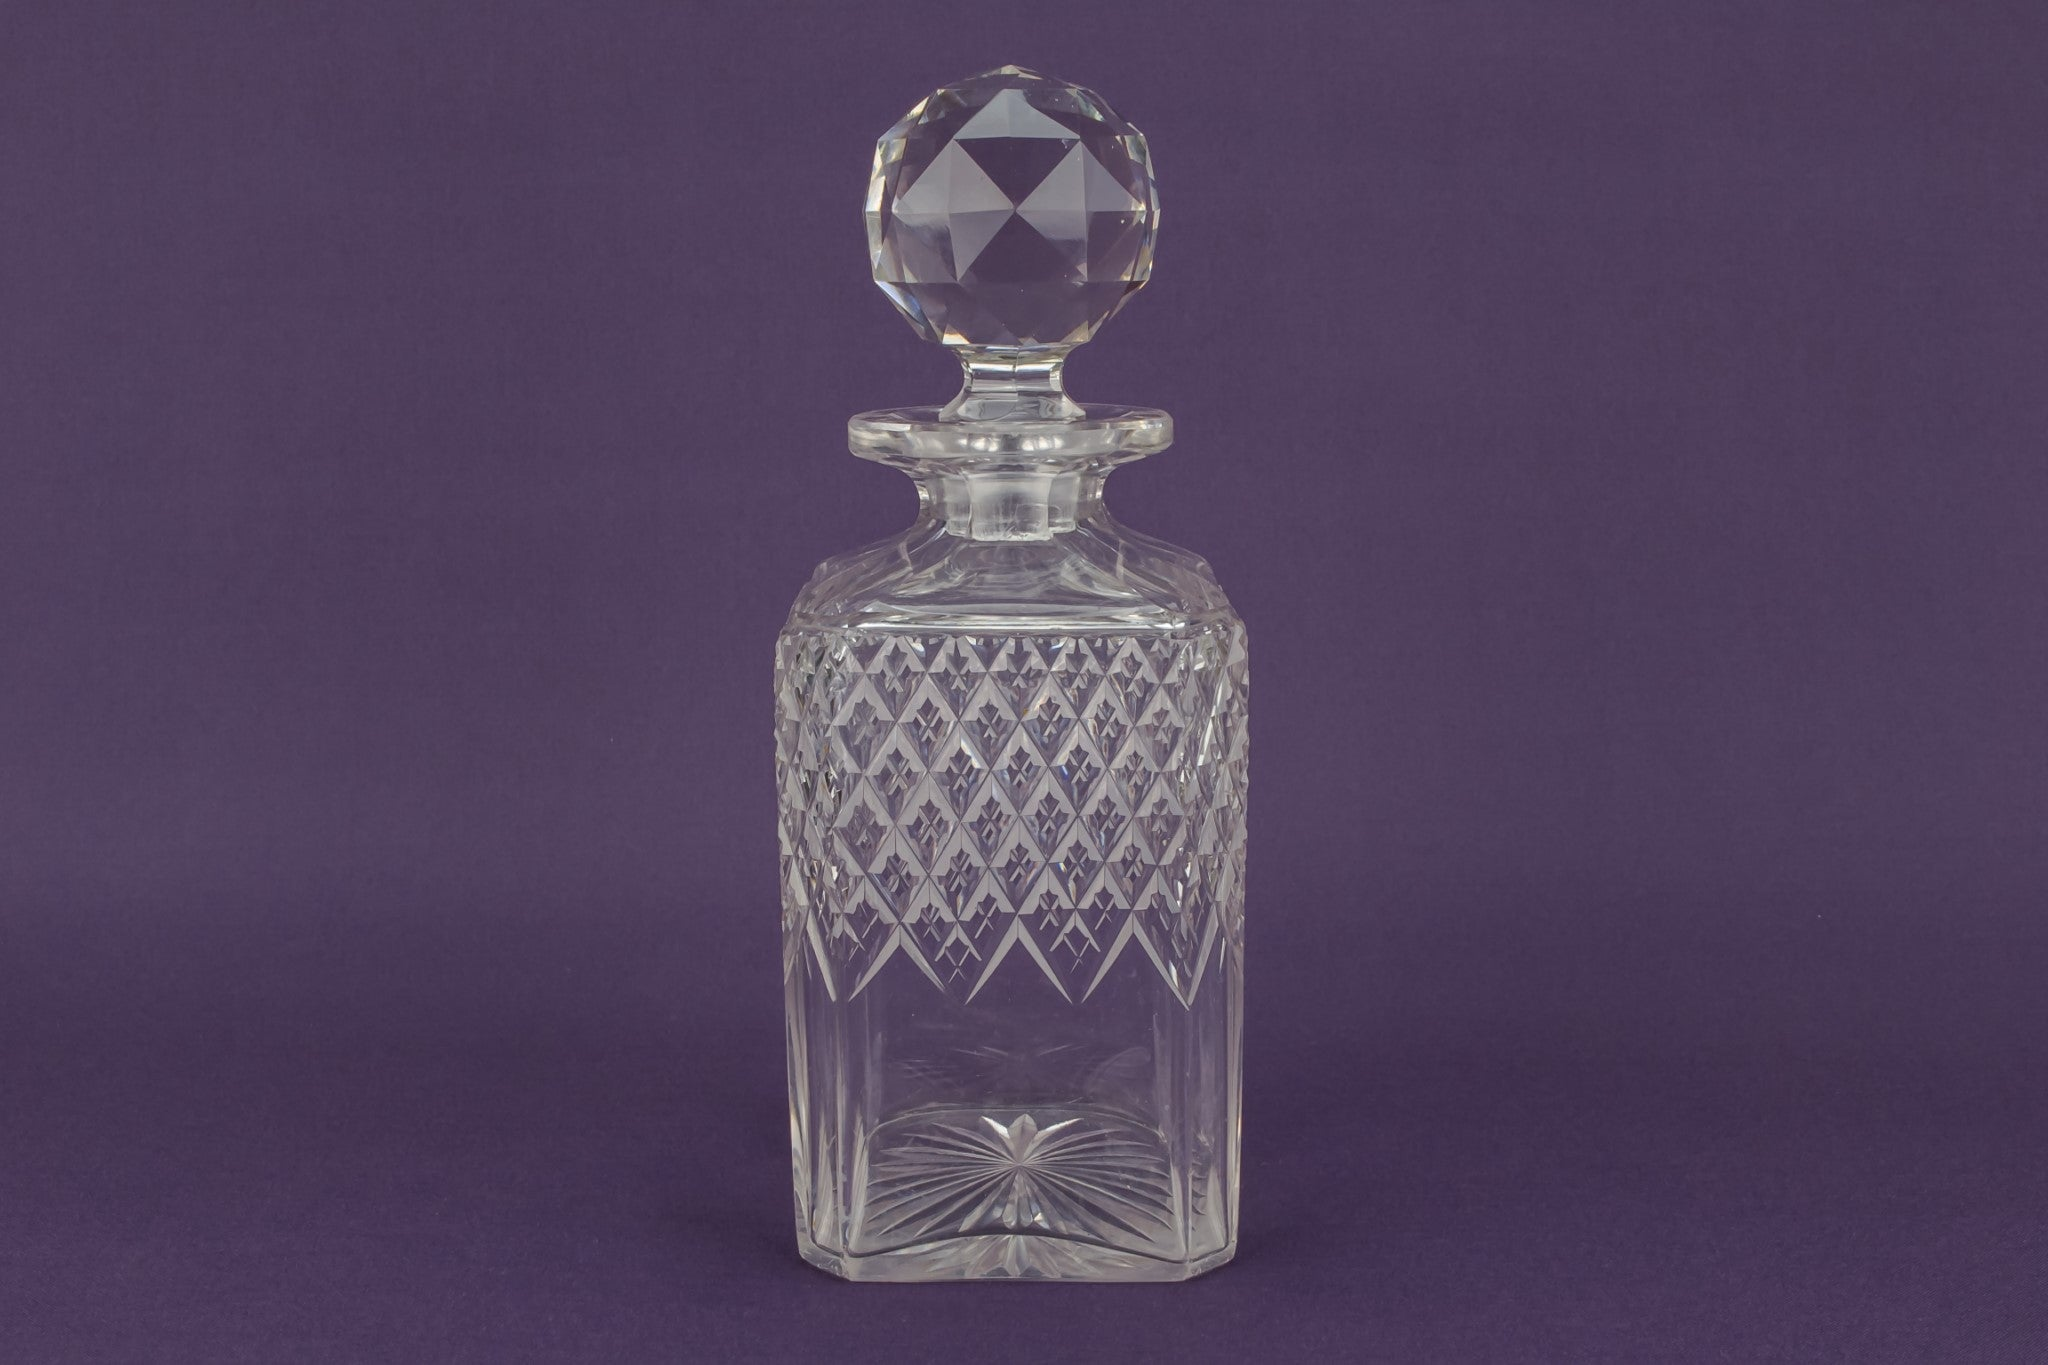 Square cut glass whisky decanter, English 1930s